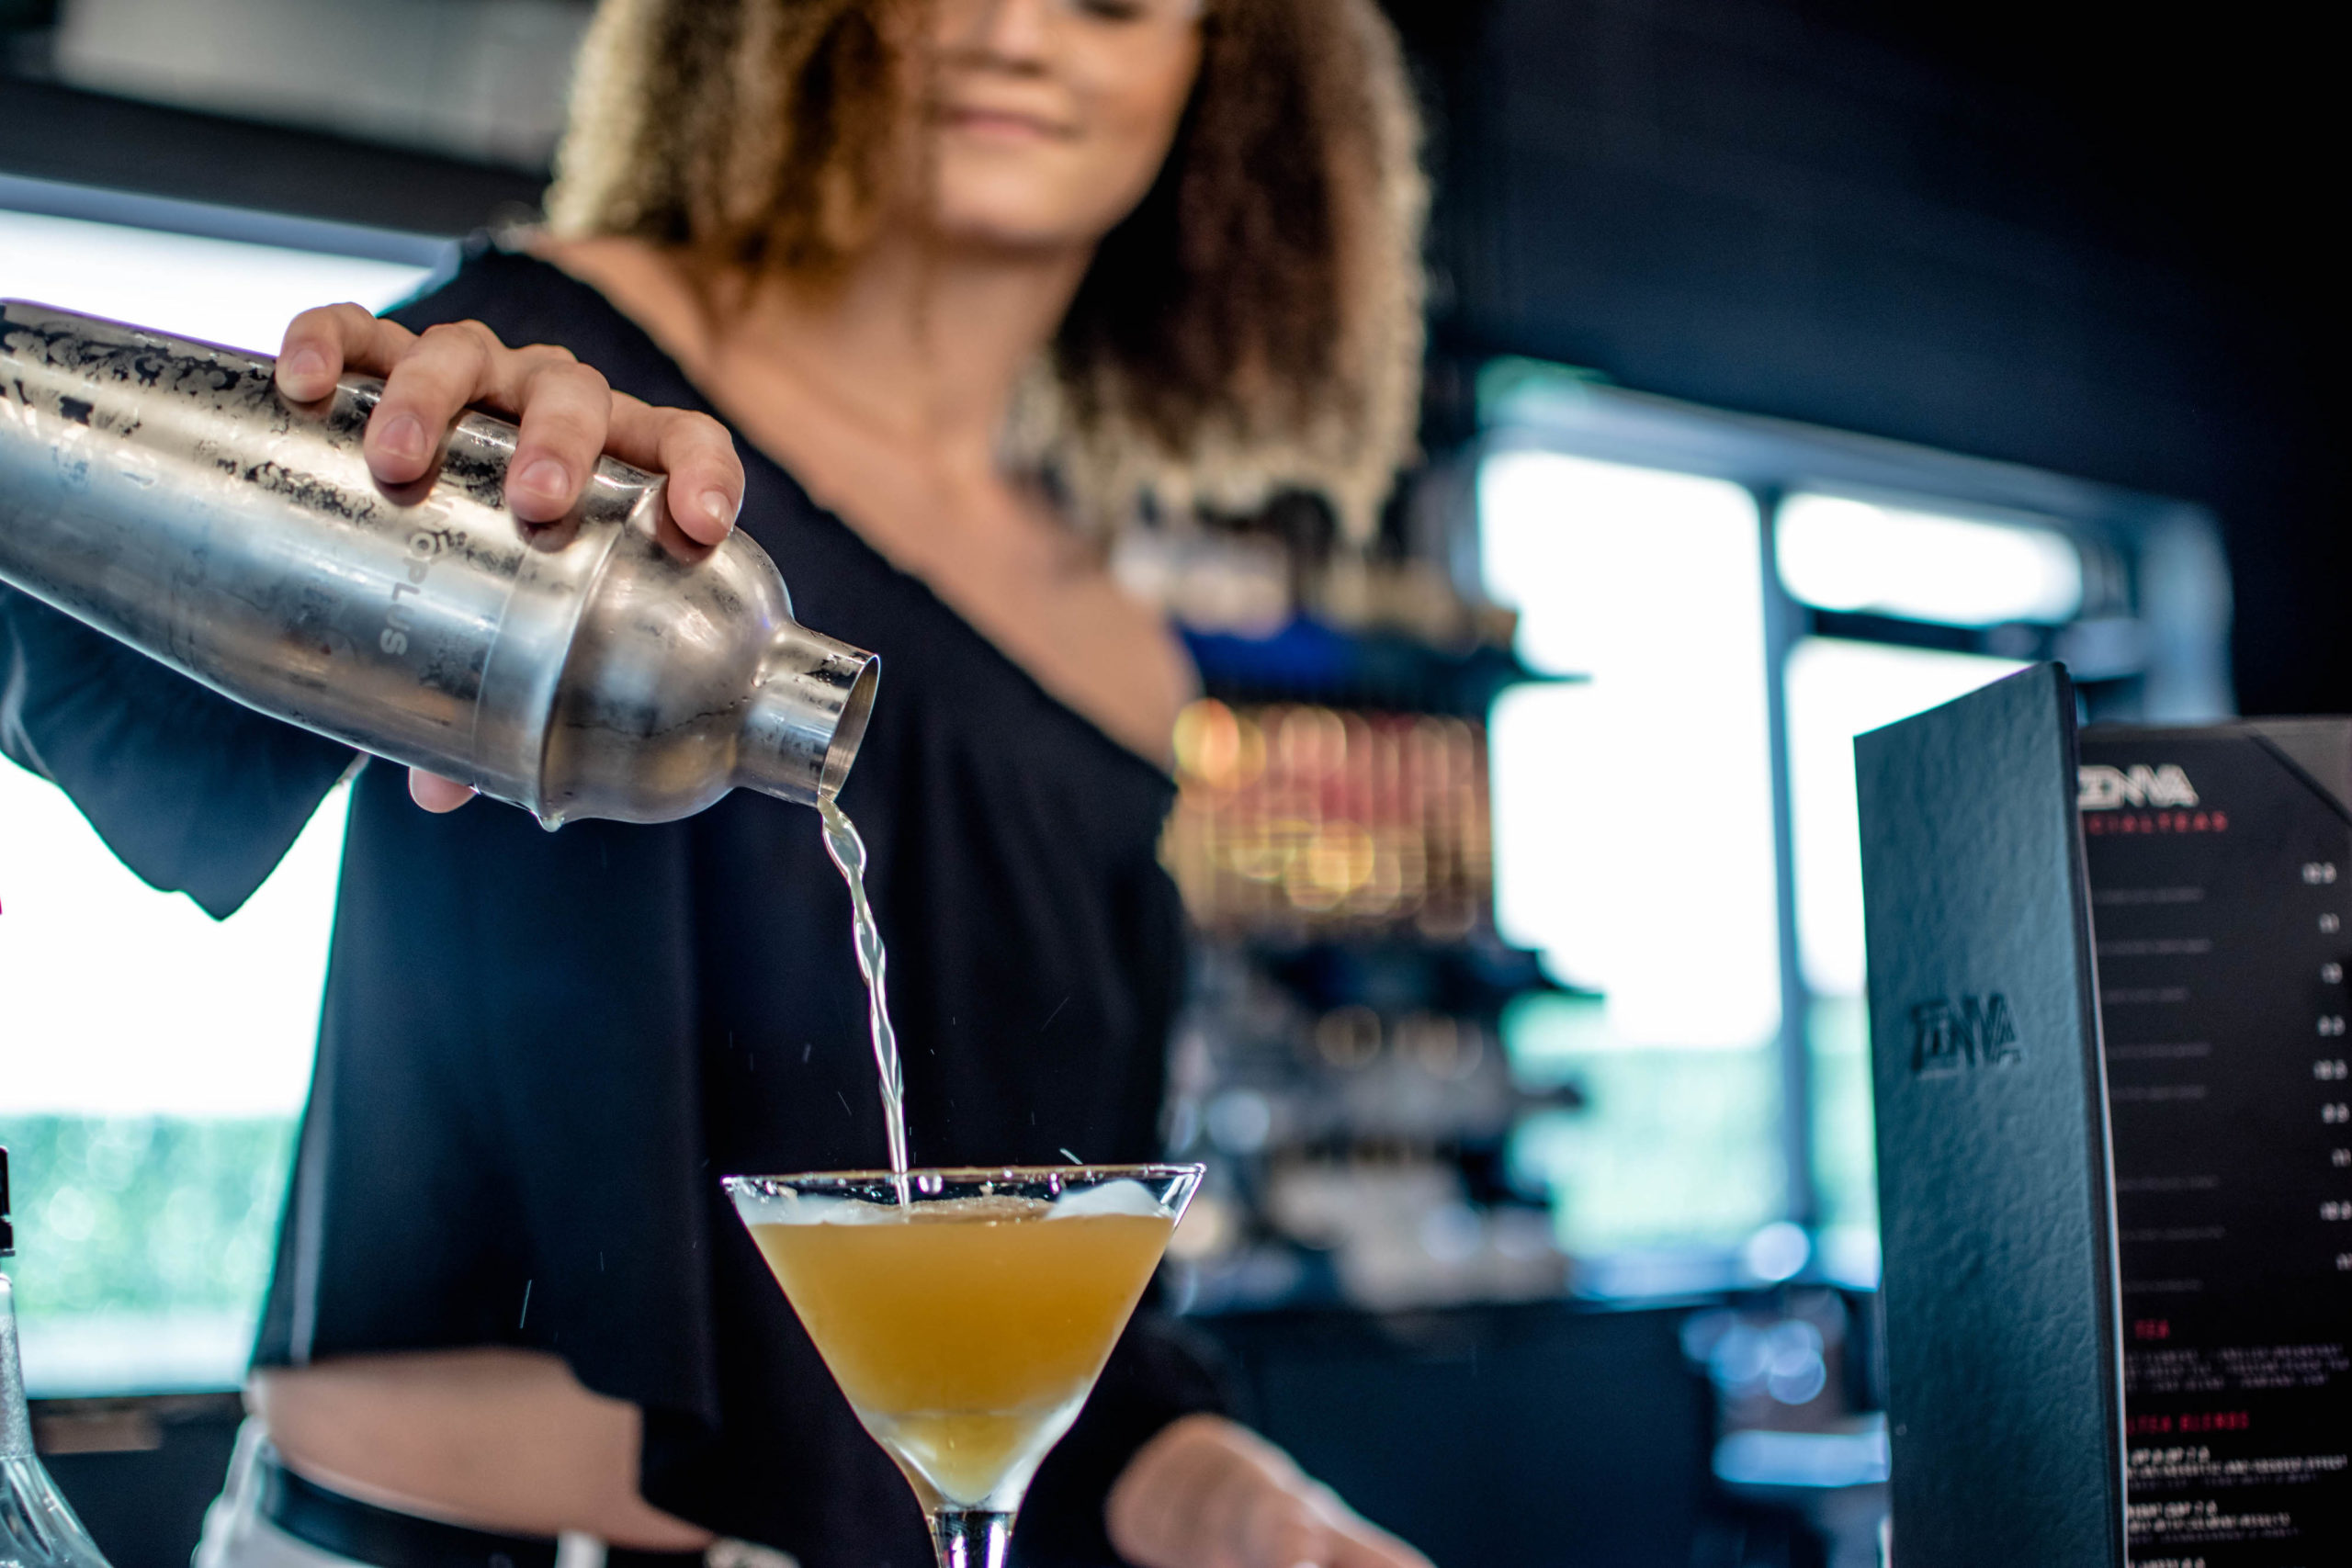 Woman pours a drink into a martini glass behind a bar.